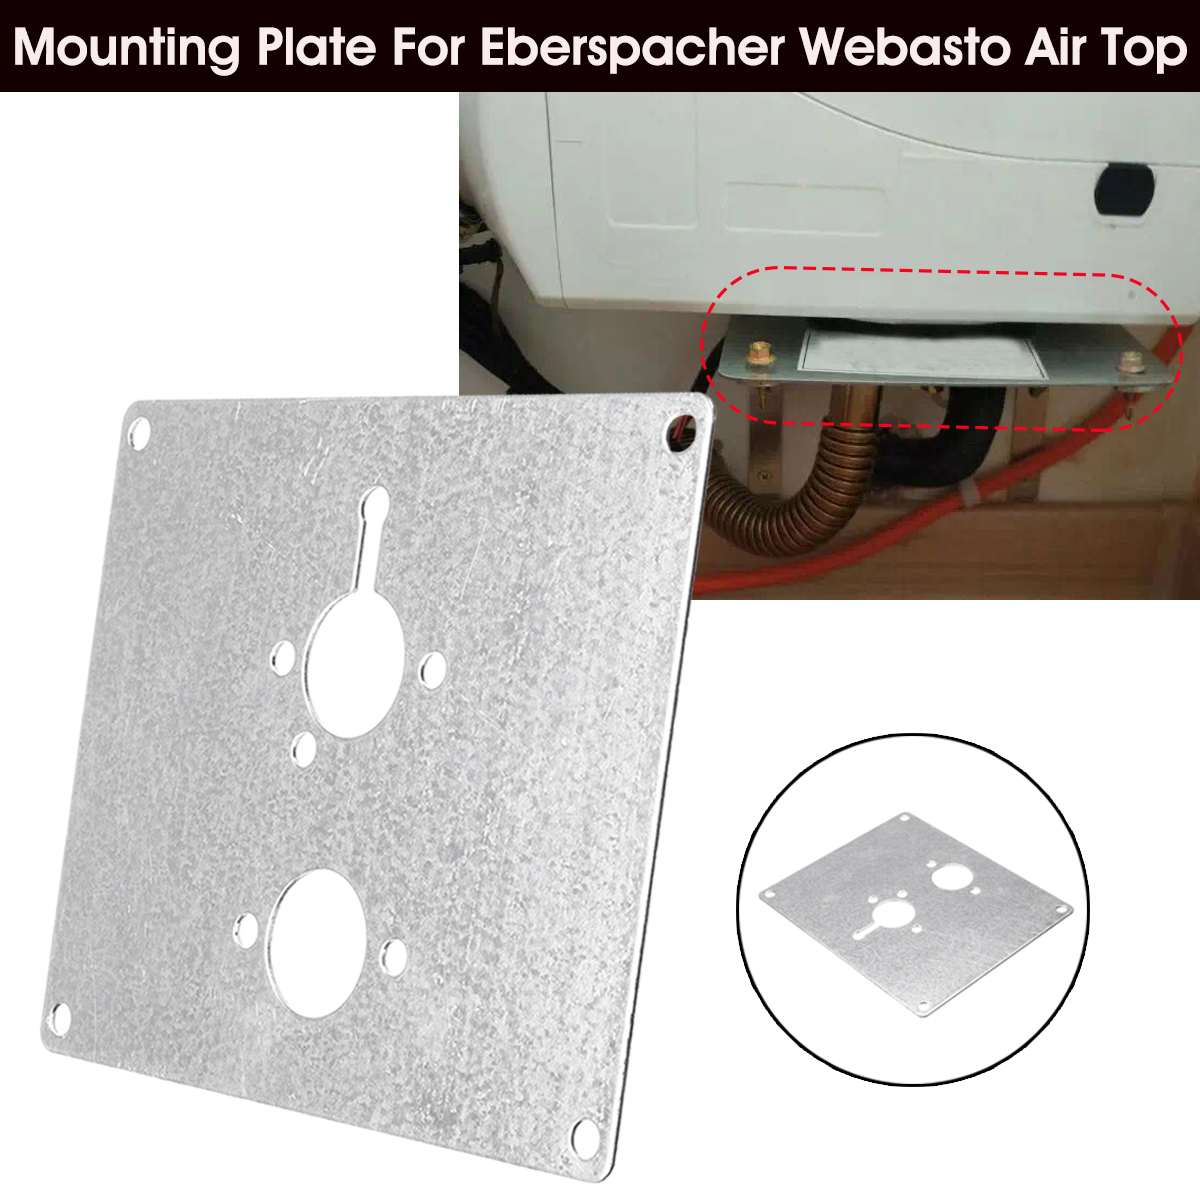 Webasto AT 2000 air heater floor mounting plate